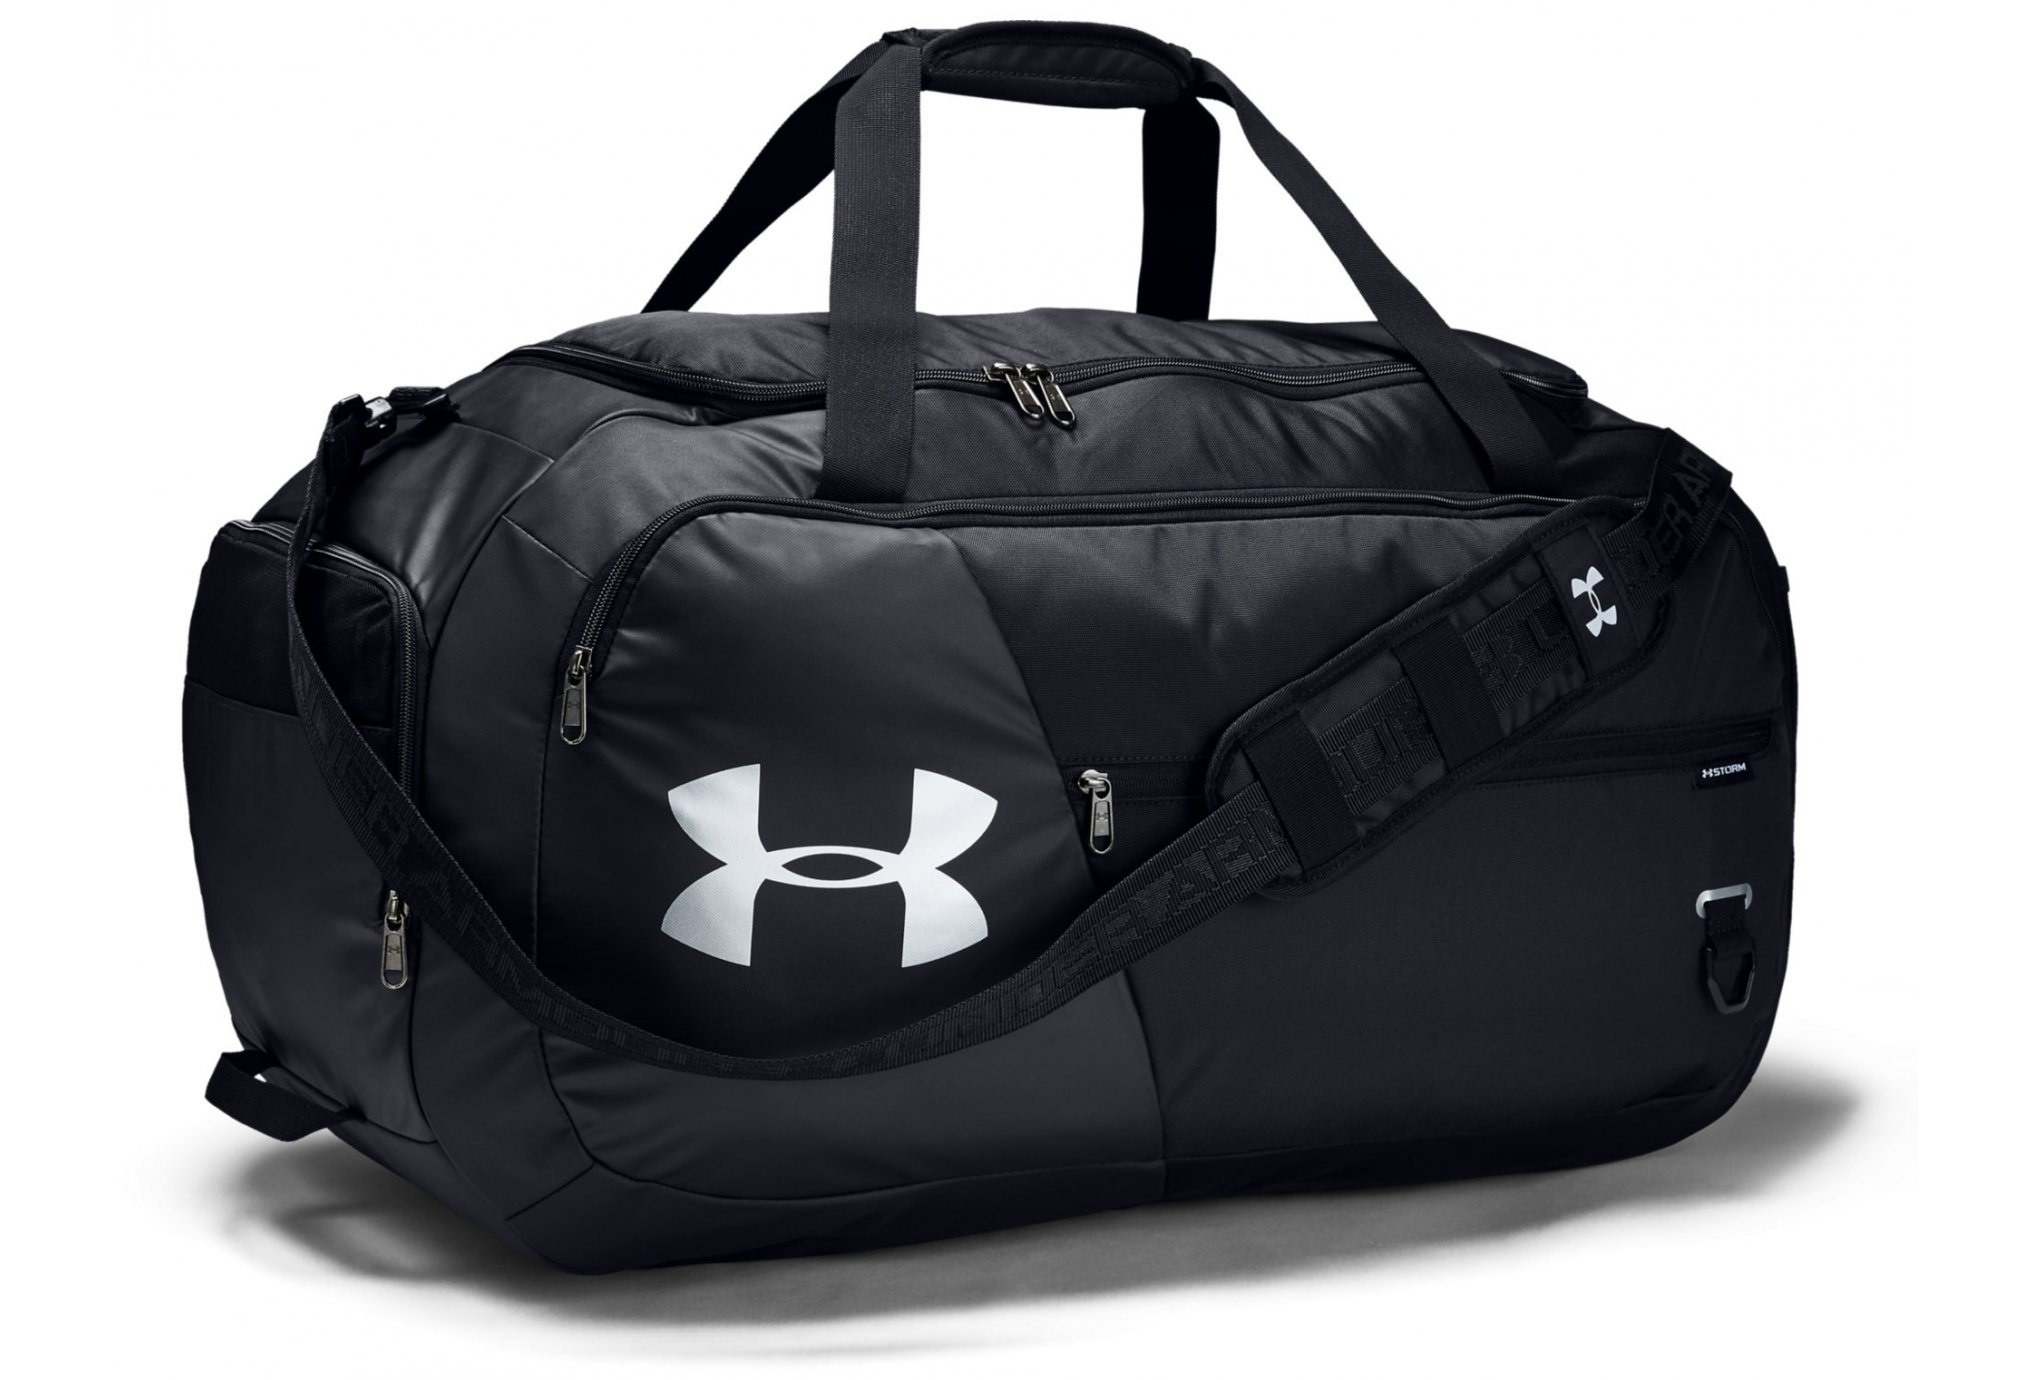 Under Armour Undeniable Duffle 4.0 - L Sac de sport